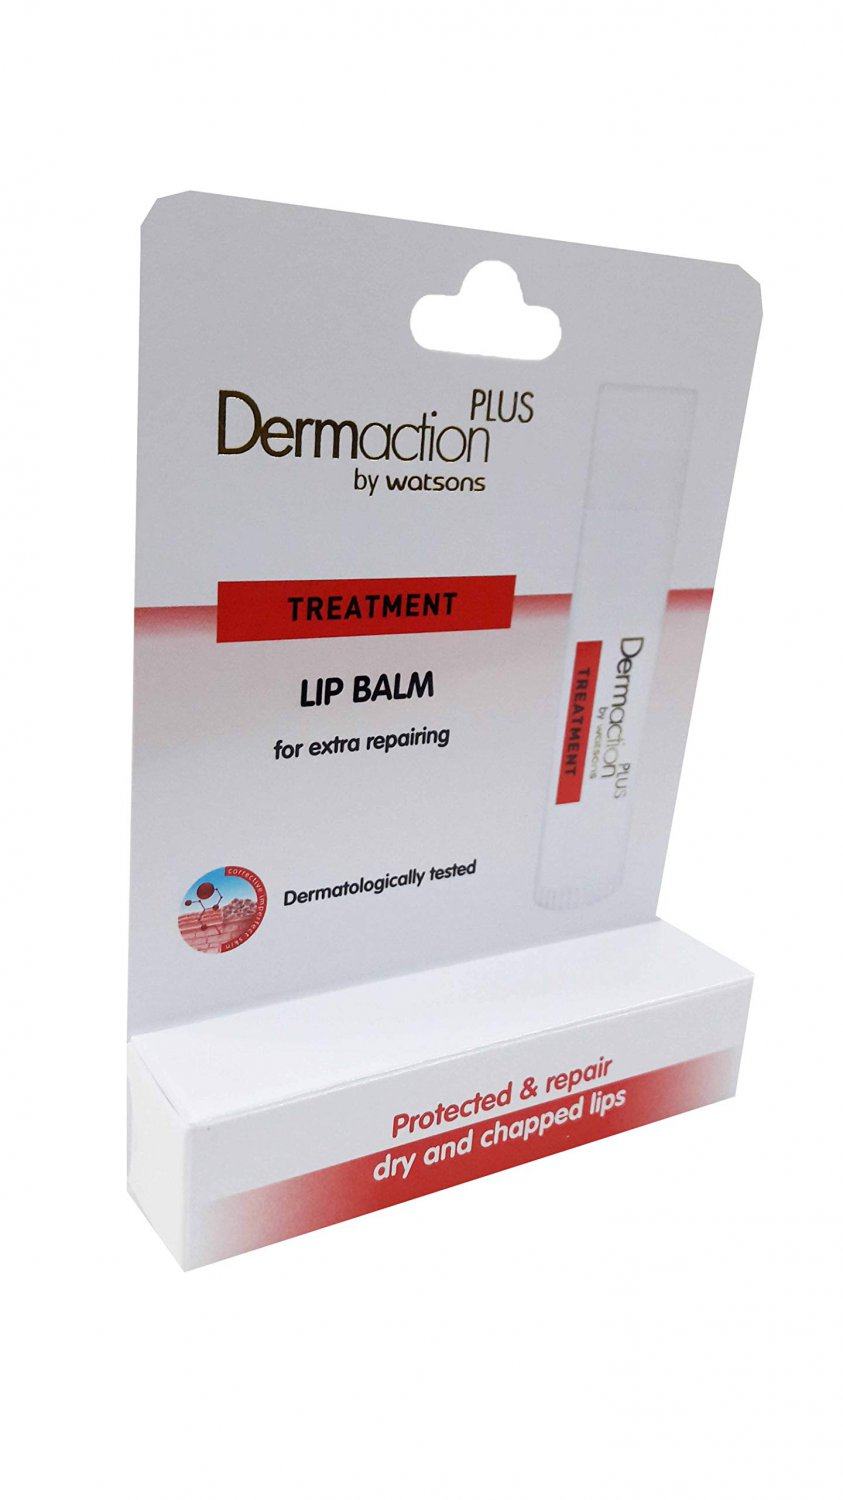 2 Packs of Dermaction Plus by Watsons Treatment Lip Balm. Protected